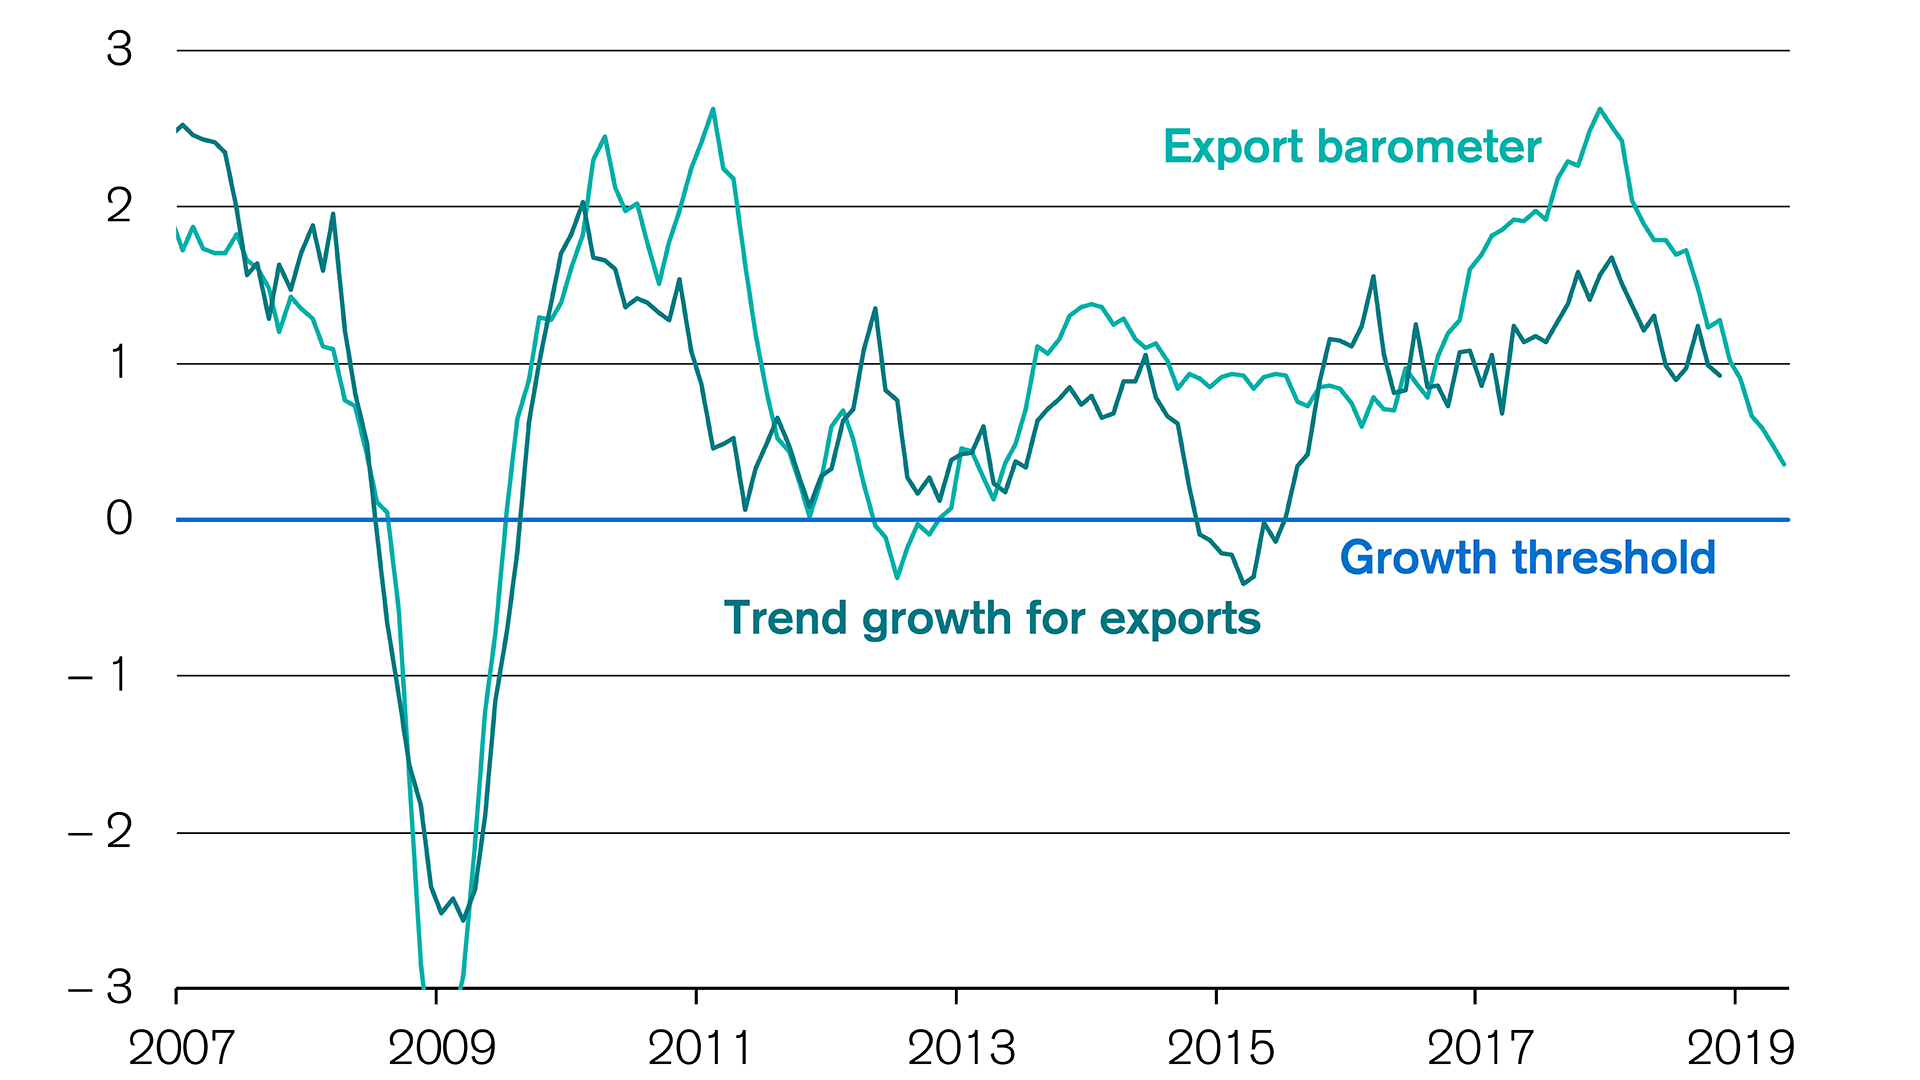 Swiss exports: Credit Suisse export barometer falls again slightly